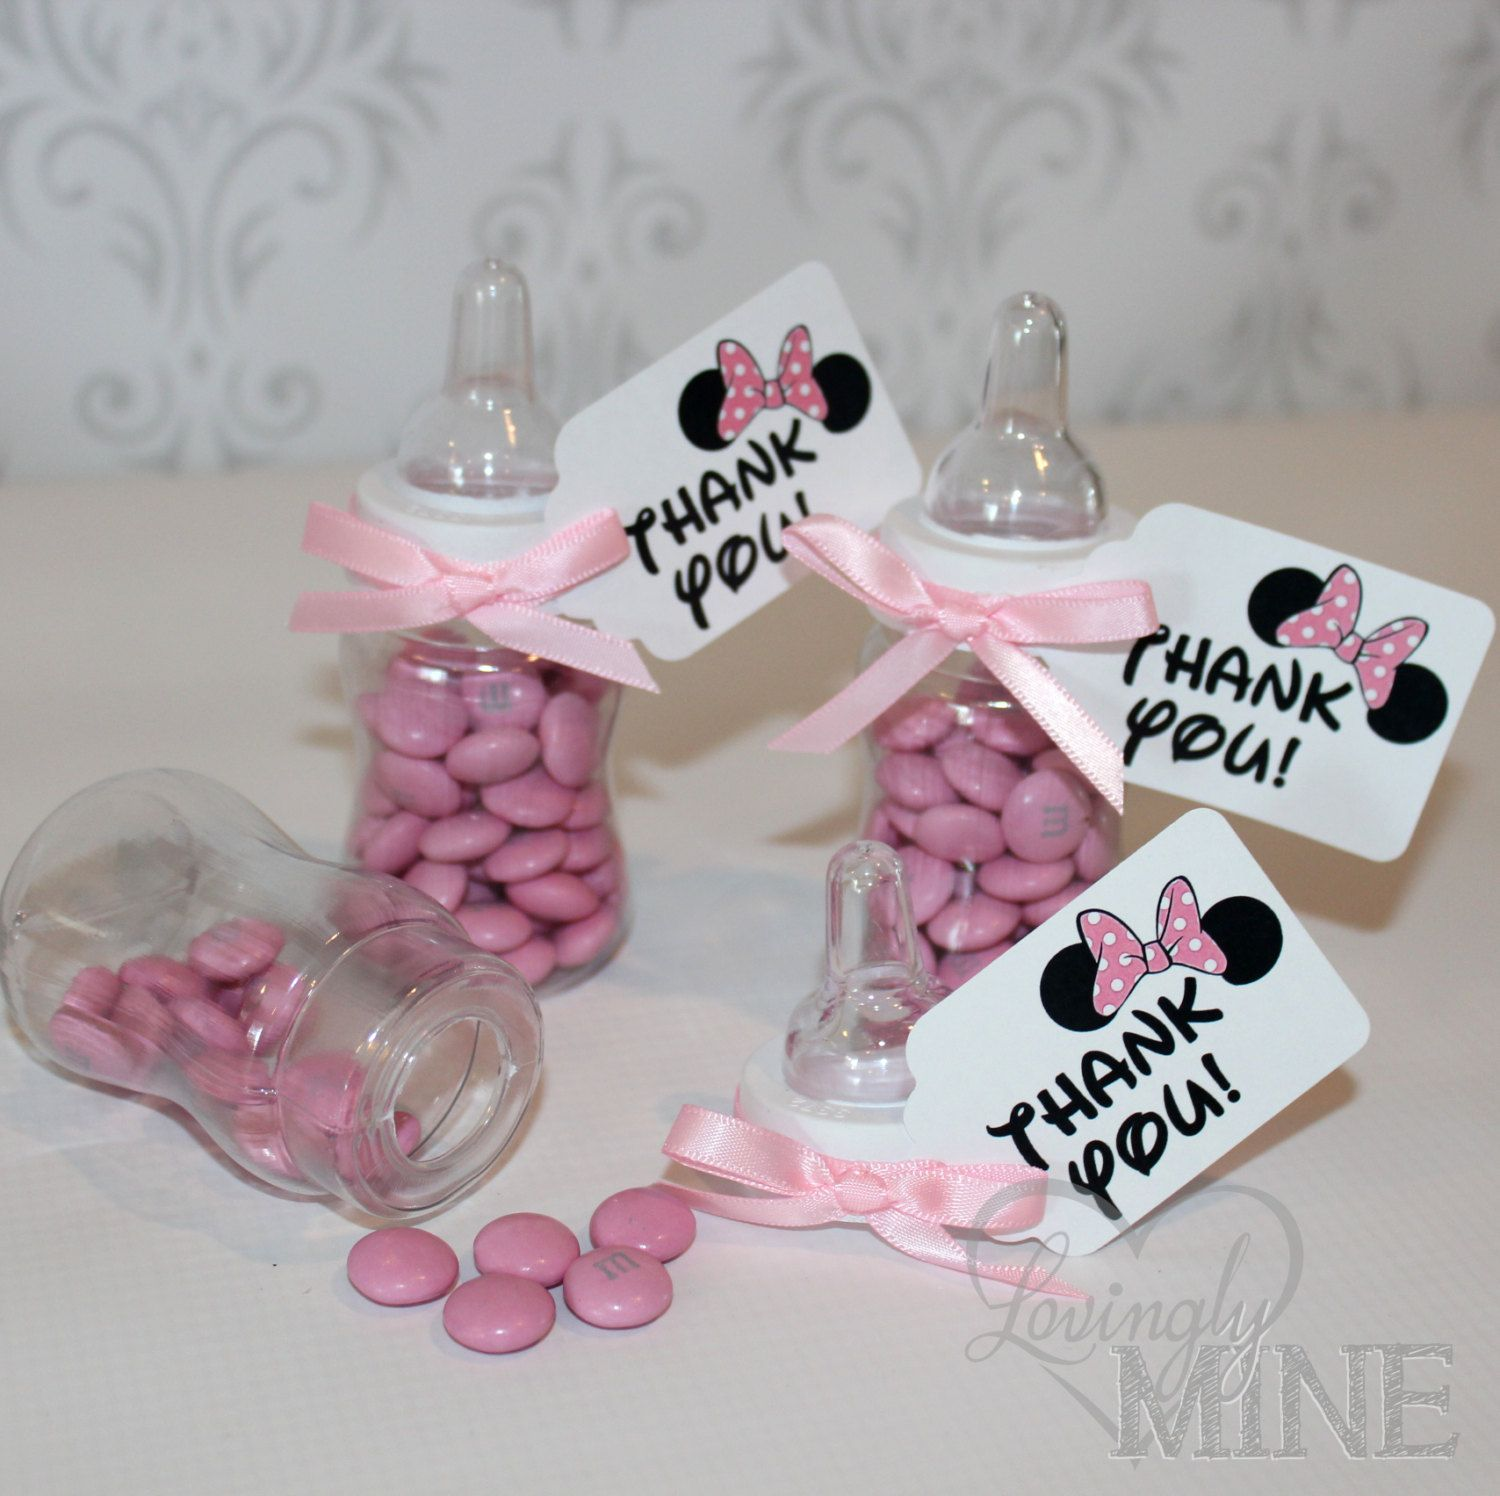 Minnie Mouse Inspired Baby Shower Favors Plastic By Lovinglymine